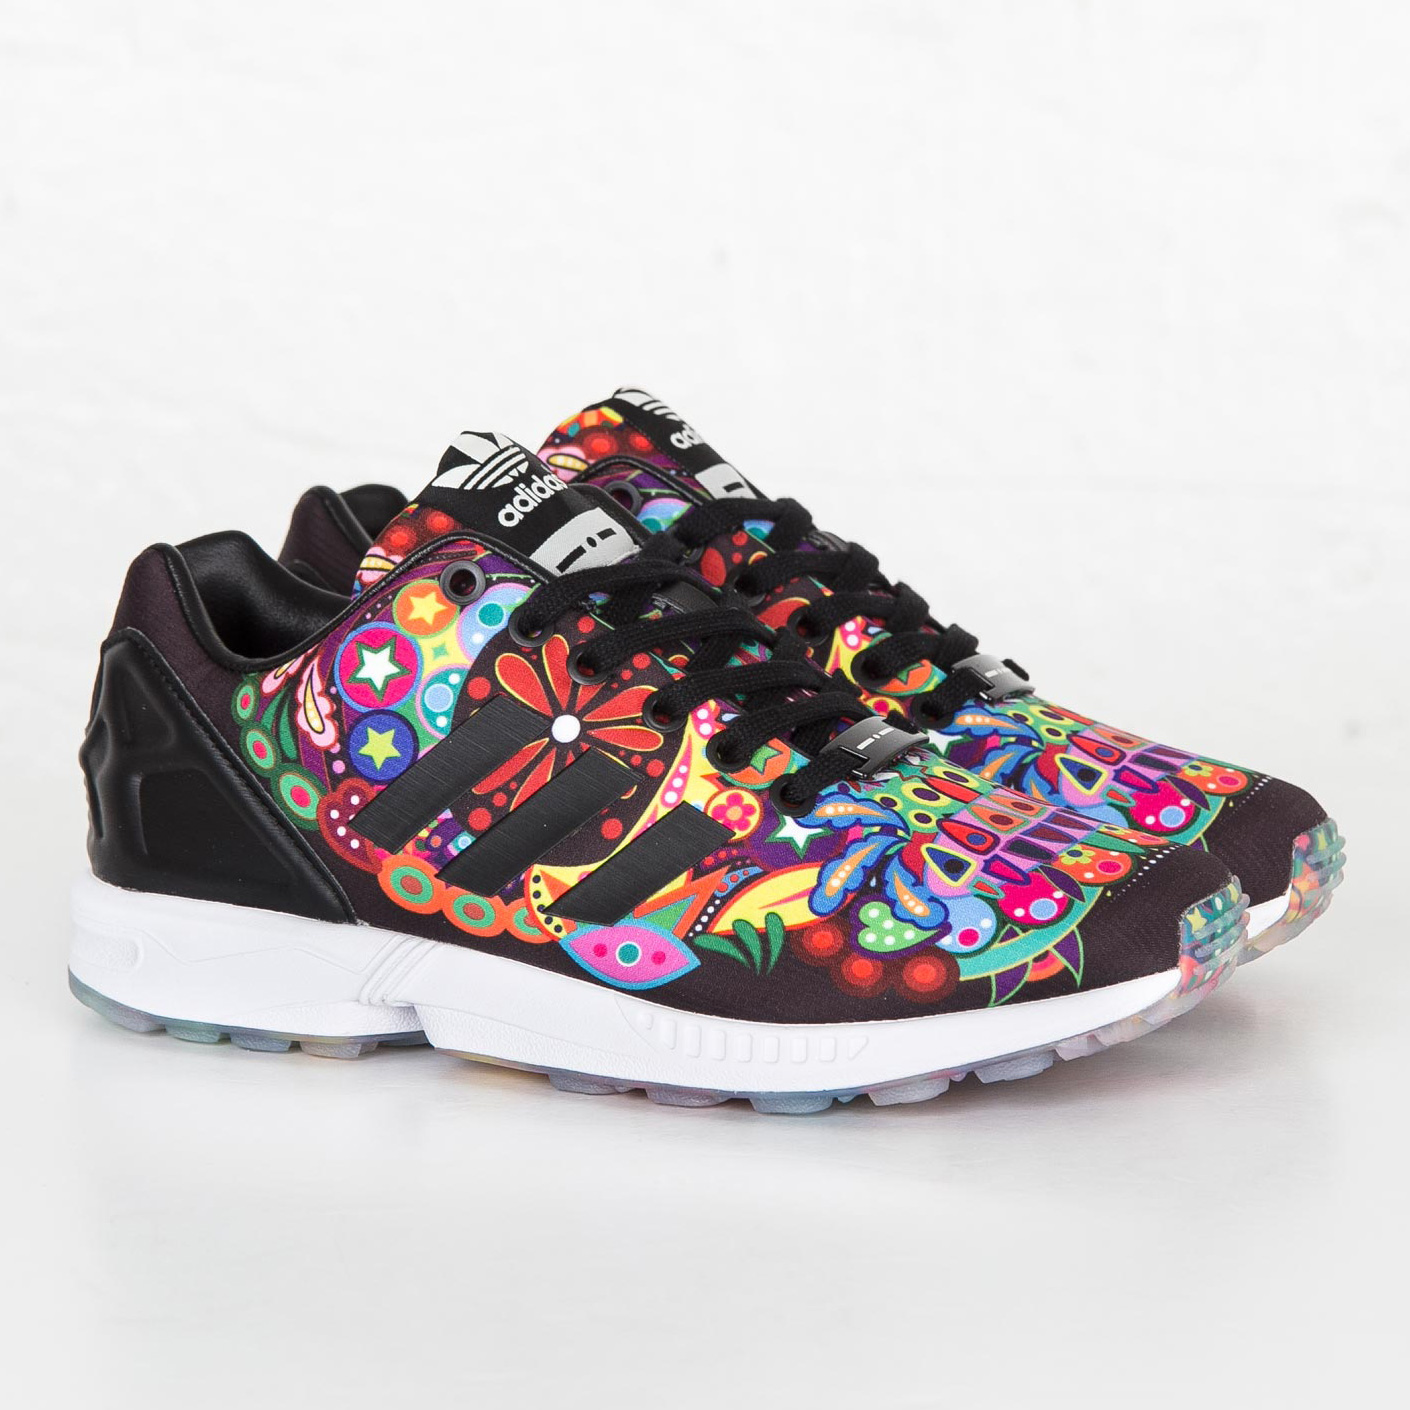 delicate colors size 7 shades of adidas ZX Flux - Aq5460 - Sneakersnstuff | sneakers ...